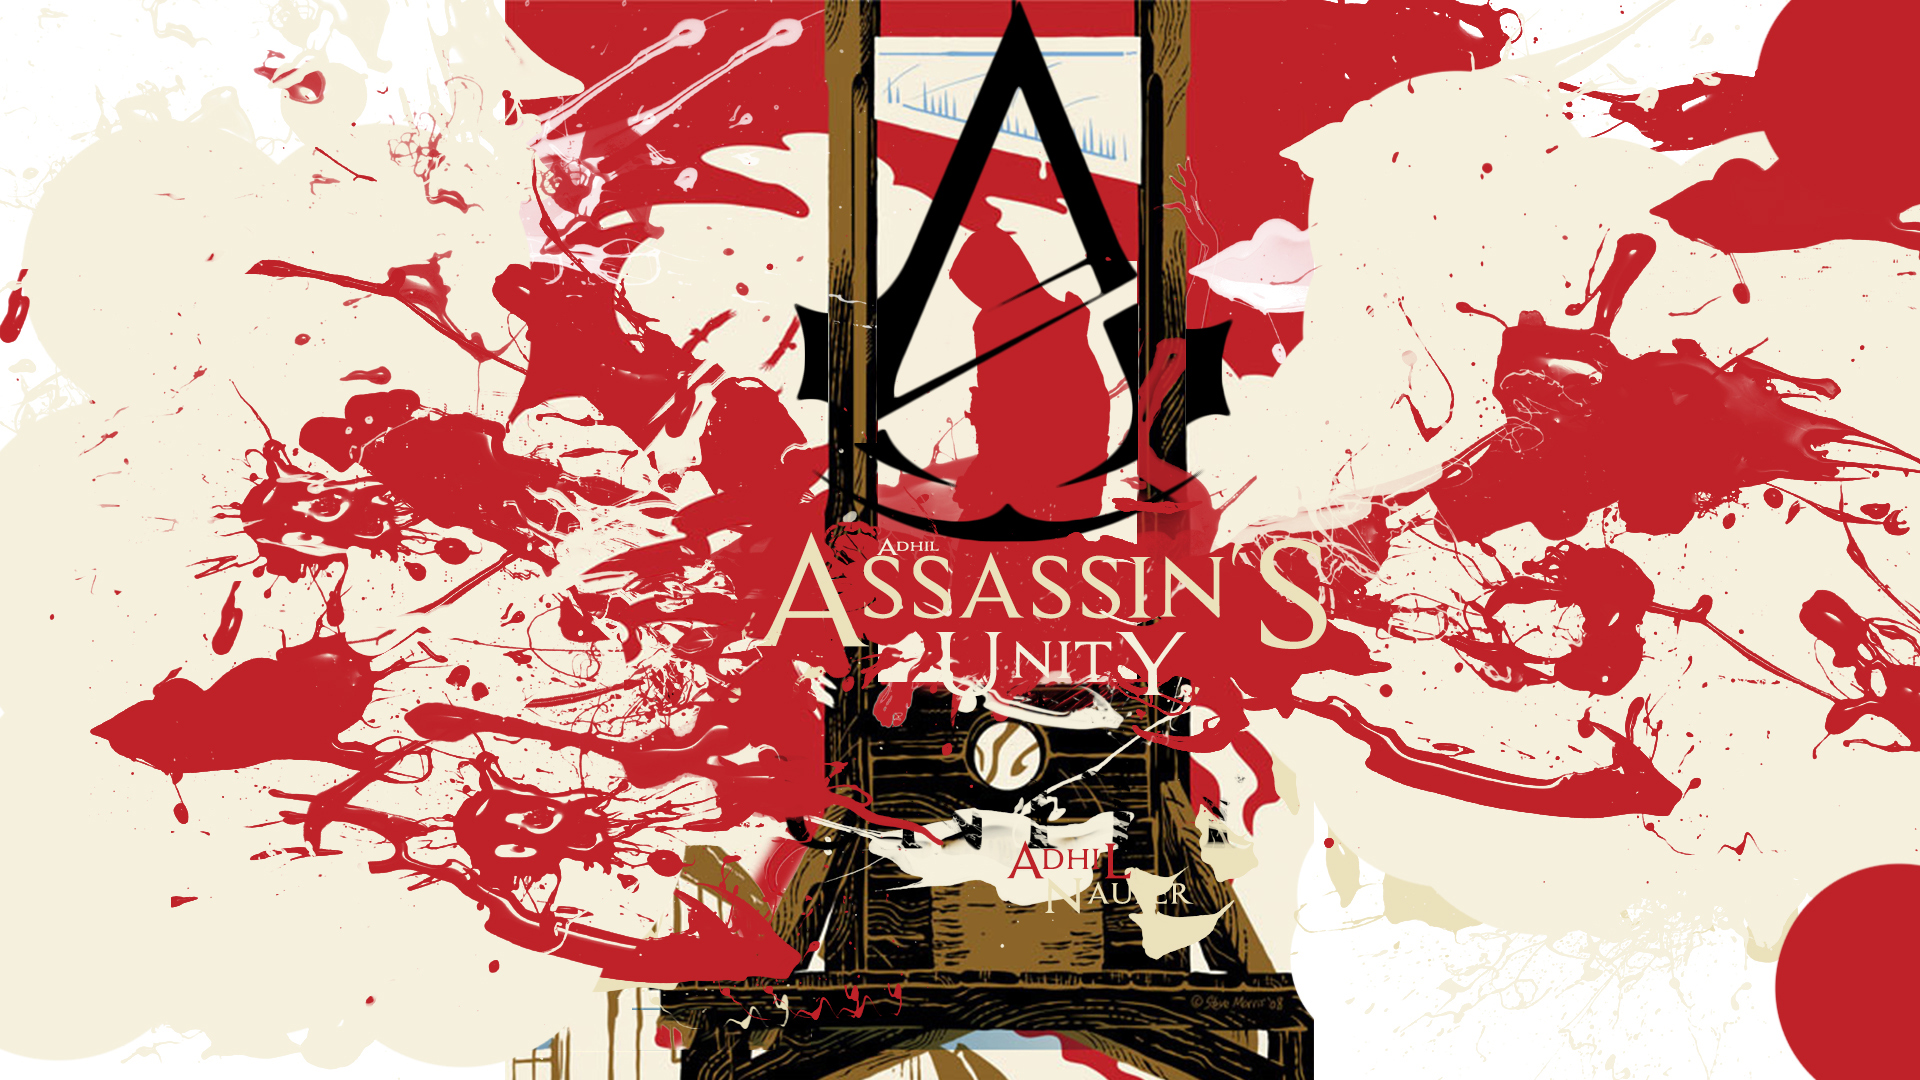 assassins creed logo unity 2f wallpaper hd